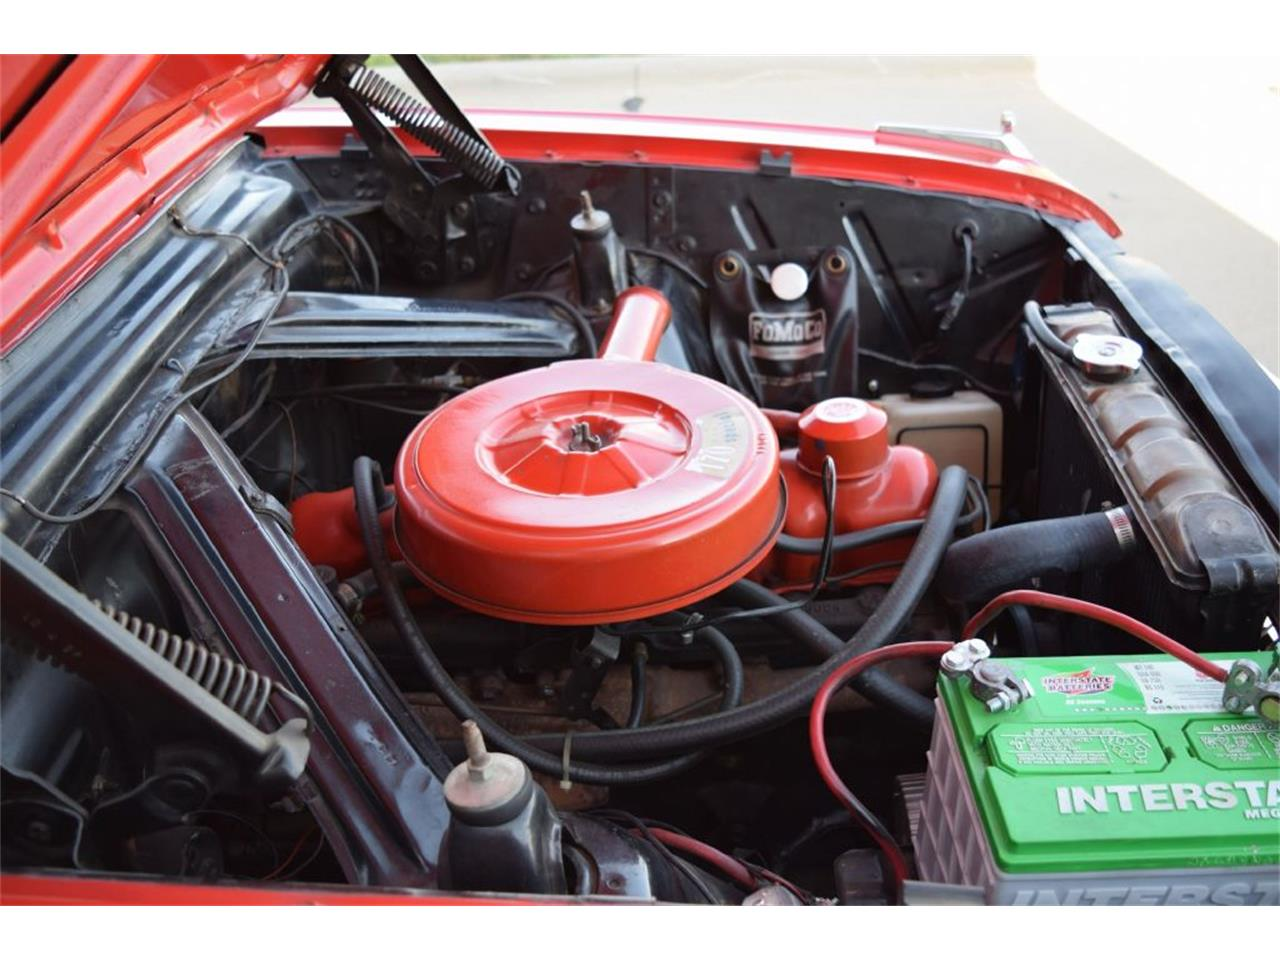 Large Picture of Classic 1963 Ford Falcon Futura - $24,900.00 Offered by Jensen Dealerships - LUN9